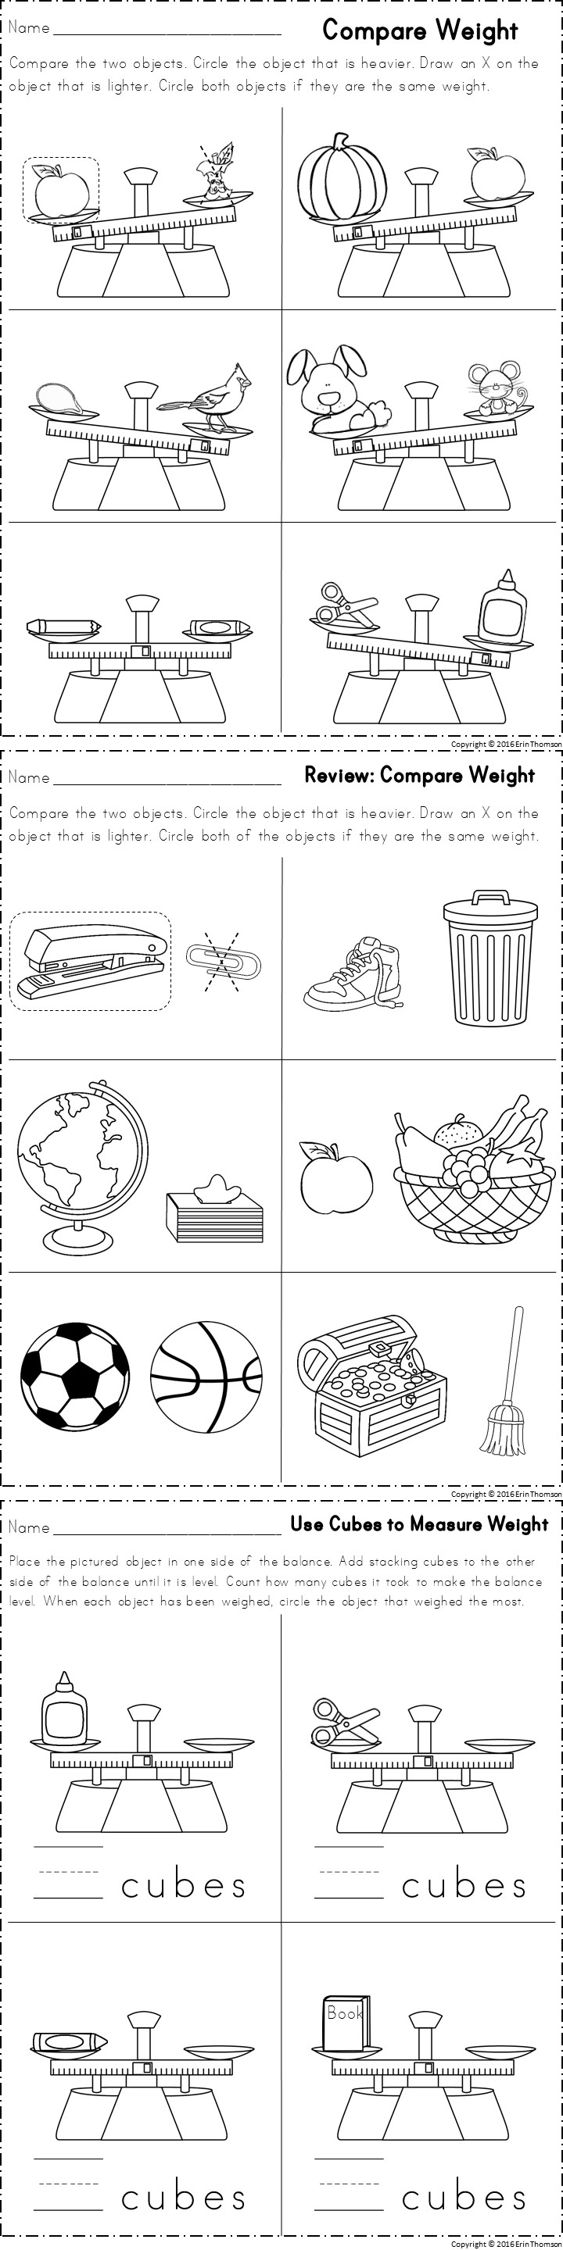 Worksheet Measurement Kindergarten Worksheets kindergarten math measurement and worksheets for comparing weight part of a unit on measurement